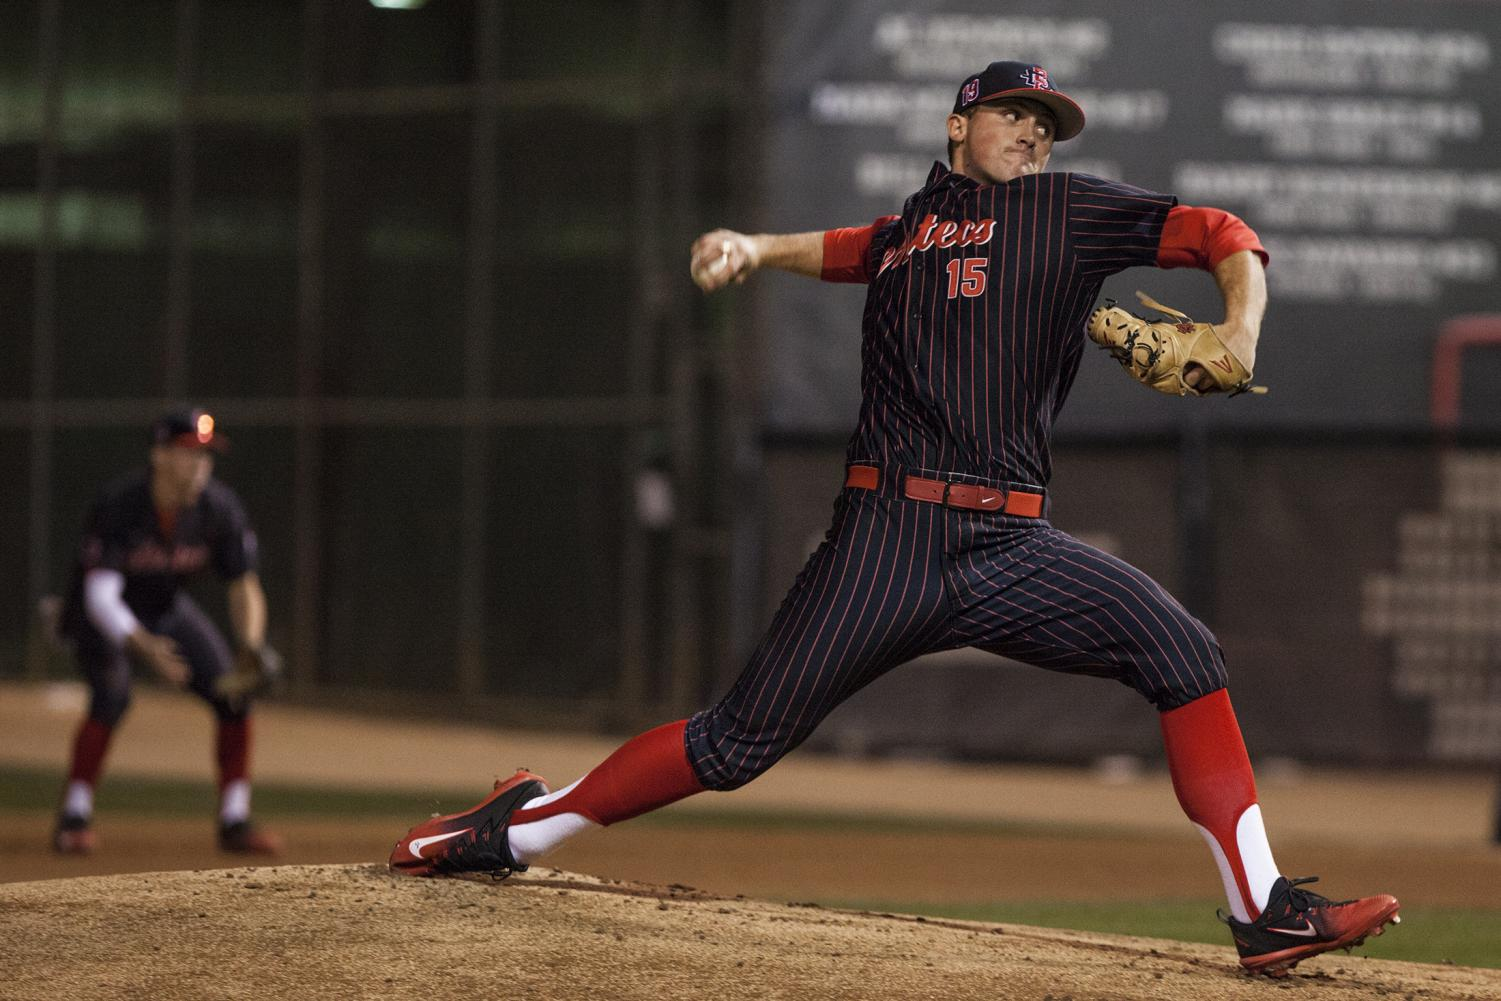 Sophomore Logan Boyer throws a pitch during the Aztecs 9-1 victory over UCSB on Feb. 16 at Tony Gwynn Stadium.